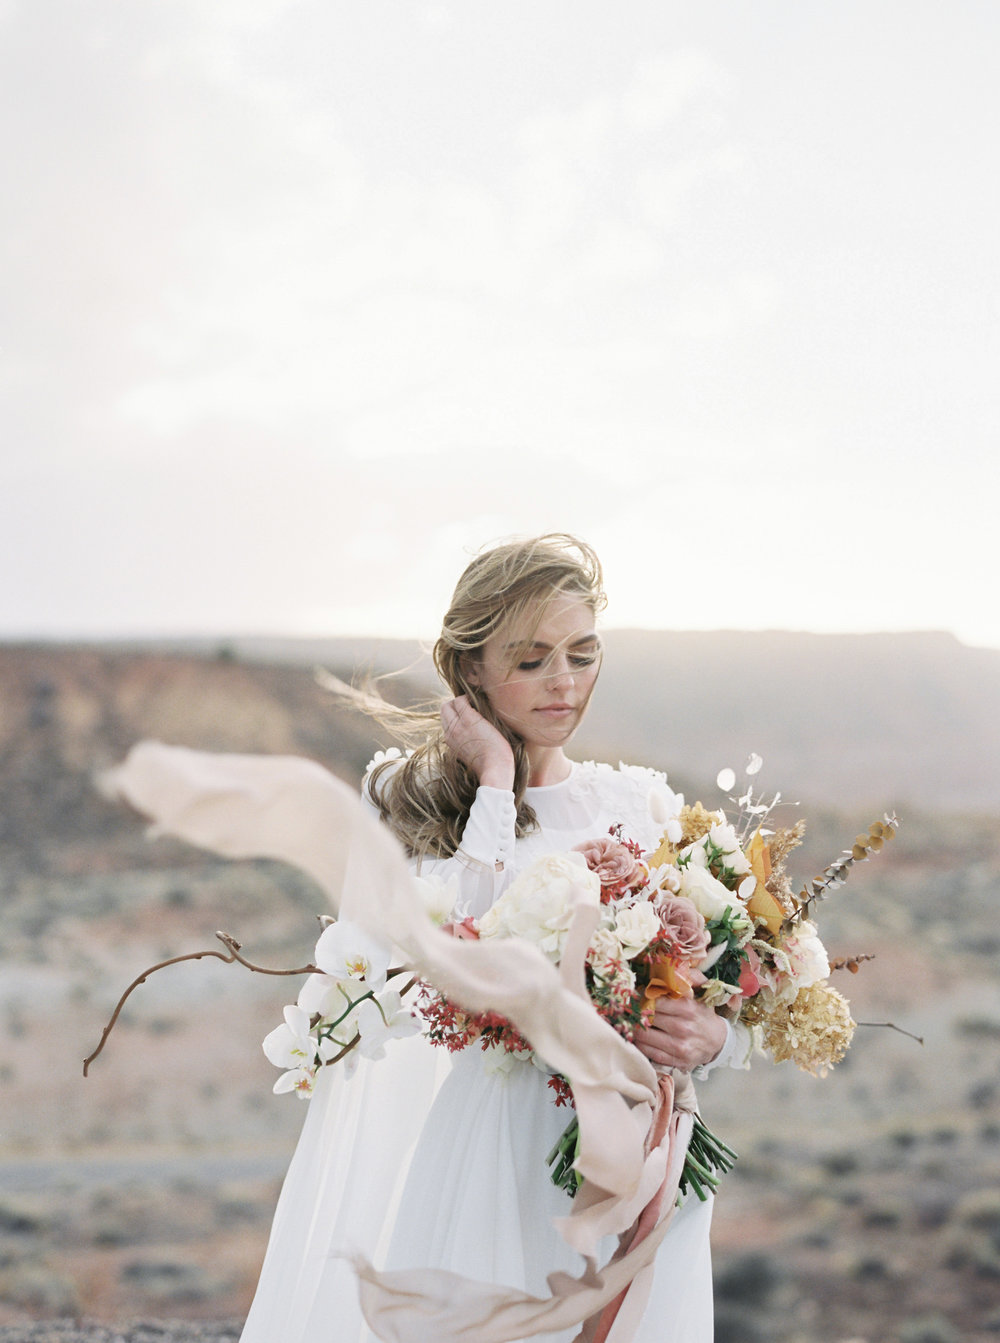 Utah Valley Bride 2018 Cover